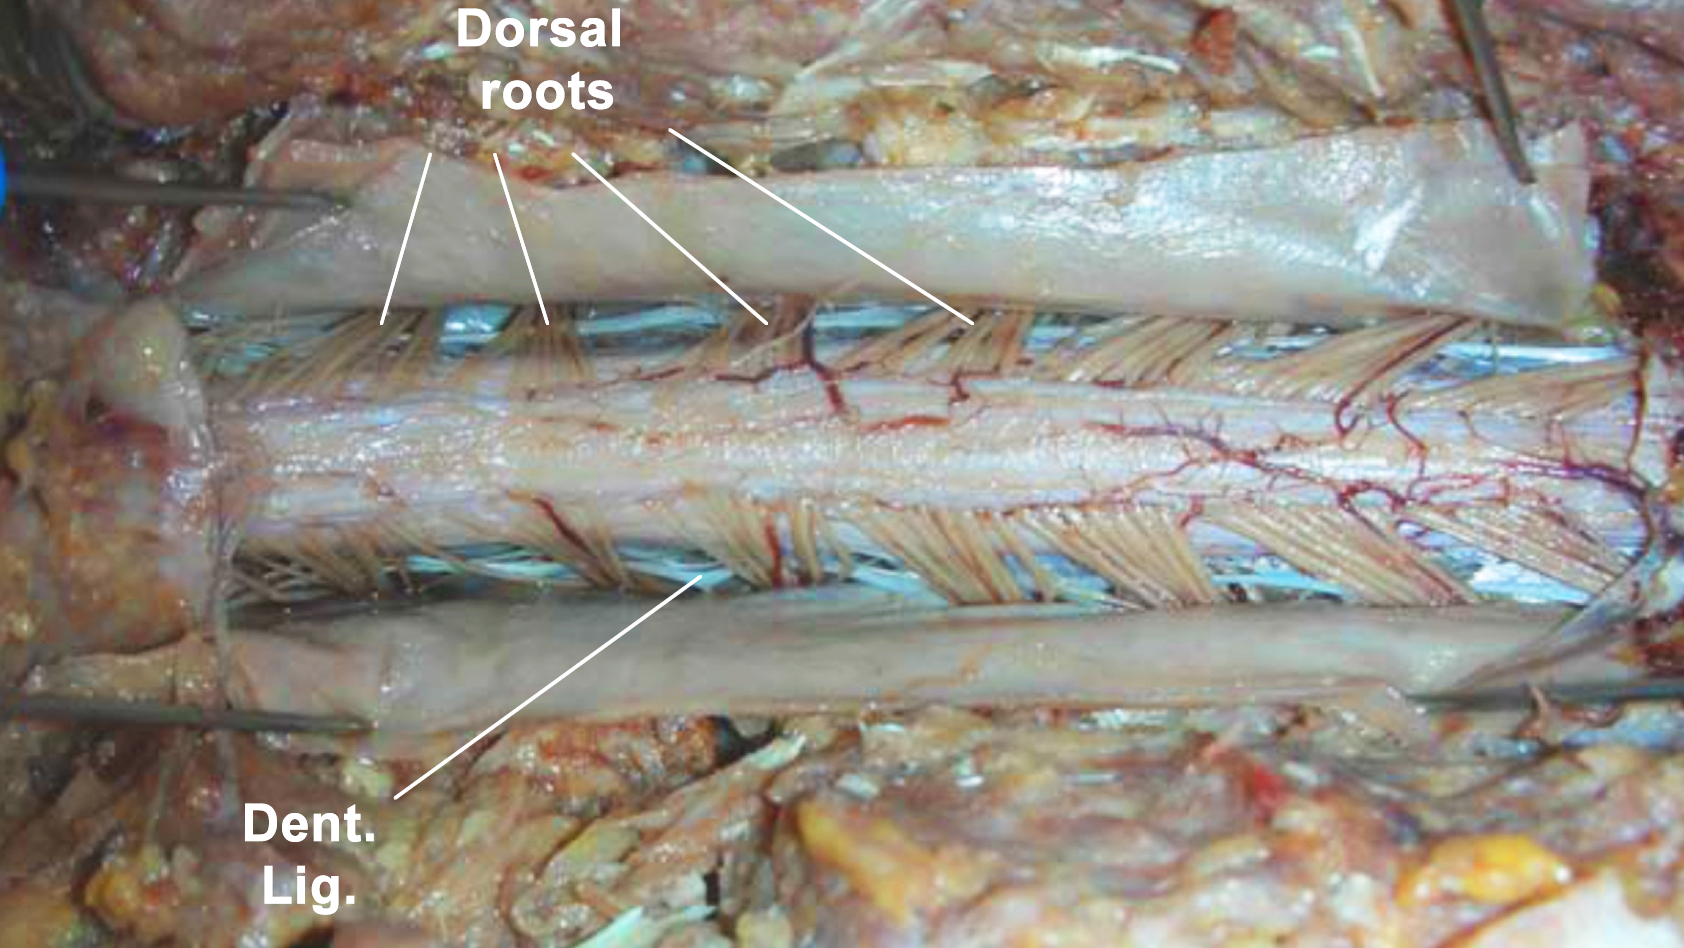 Figure 2: Photograph of a cadaveric specimen after thoracolumbar laminectomy and midline dural incision. There is a marked change in SC vascularity from the thoracic (left side of photo) to the lumbar SC (right side). The dorsal roots have an oblique trajectory toward the intervertebral foramina. Denticulate ligaments are positioned anterior to the dorsal roots and have a typical bright white appearance.